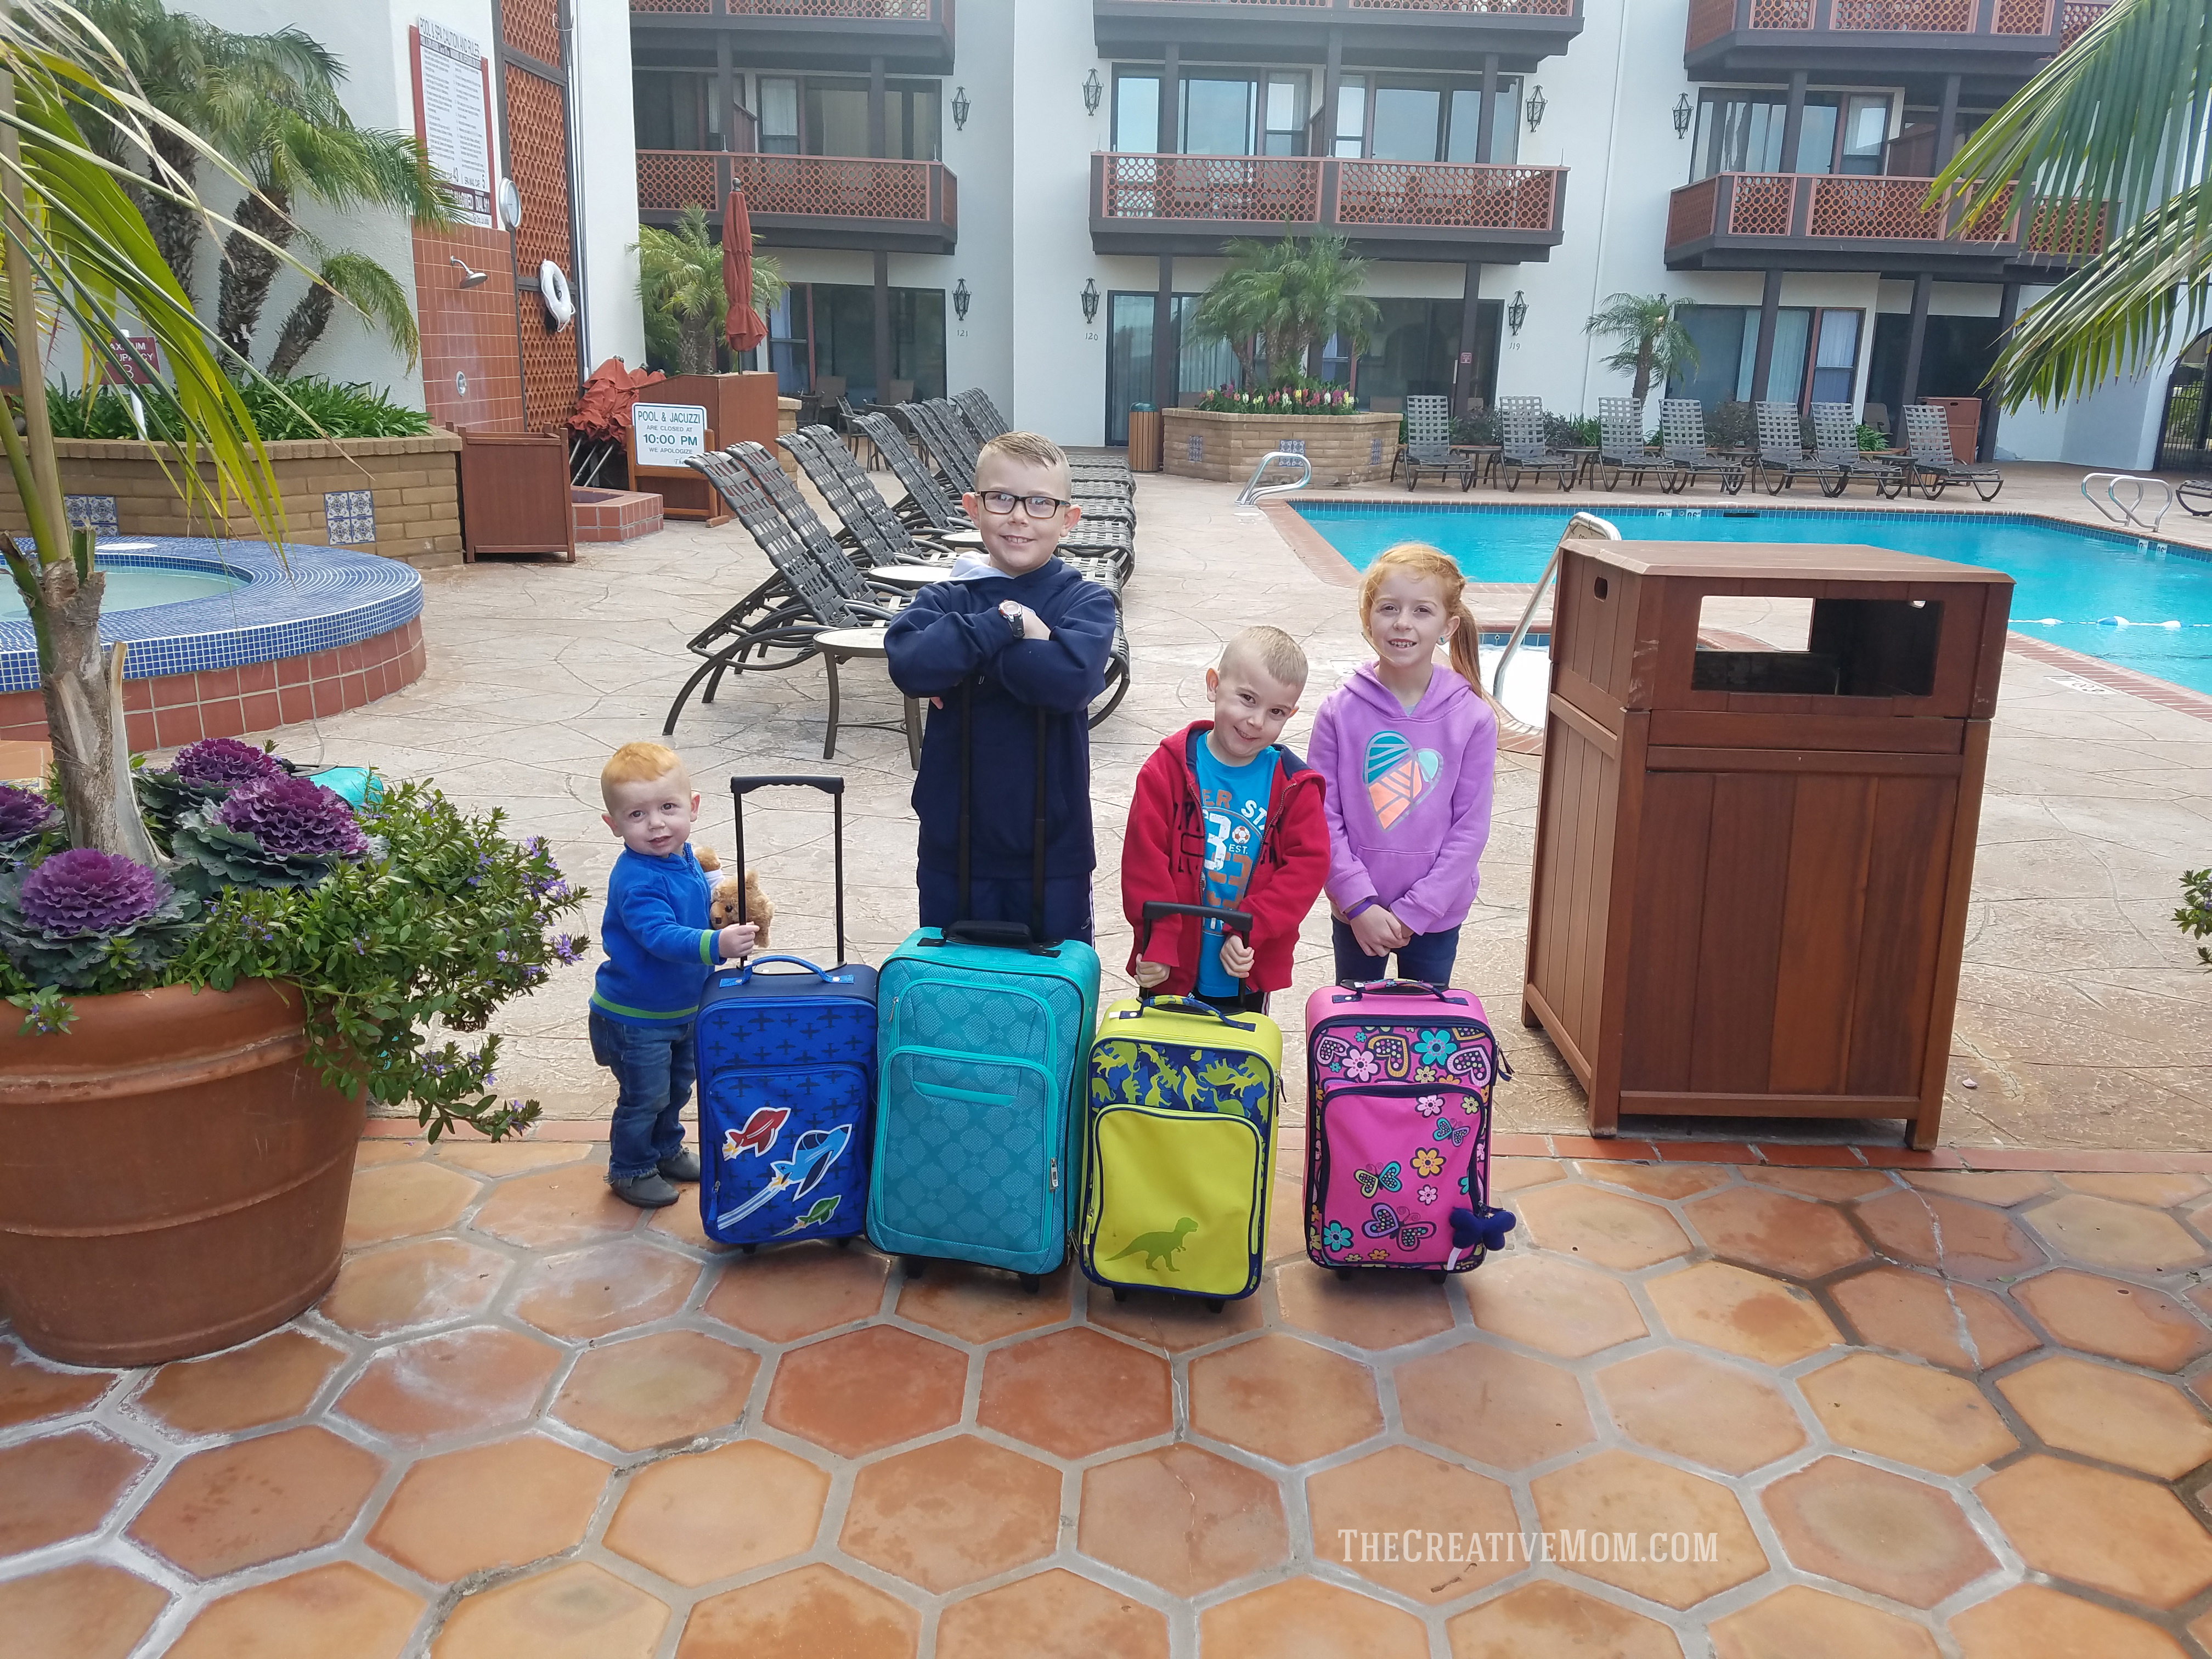 The best family friendly Hotel in San Diego